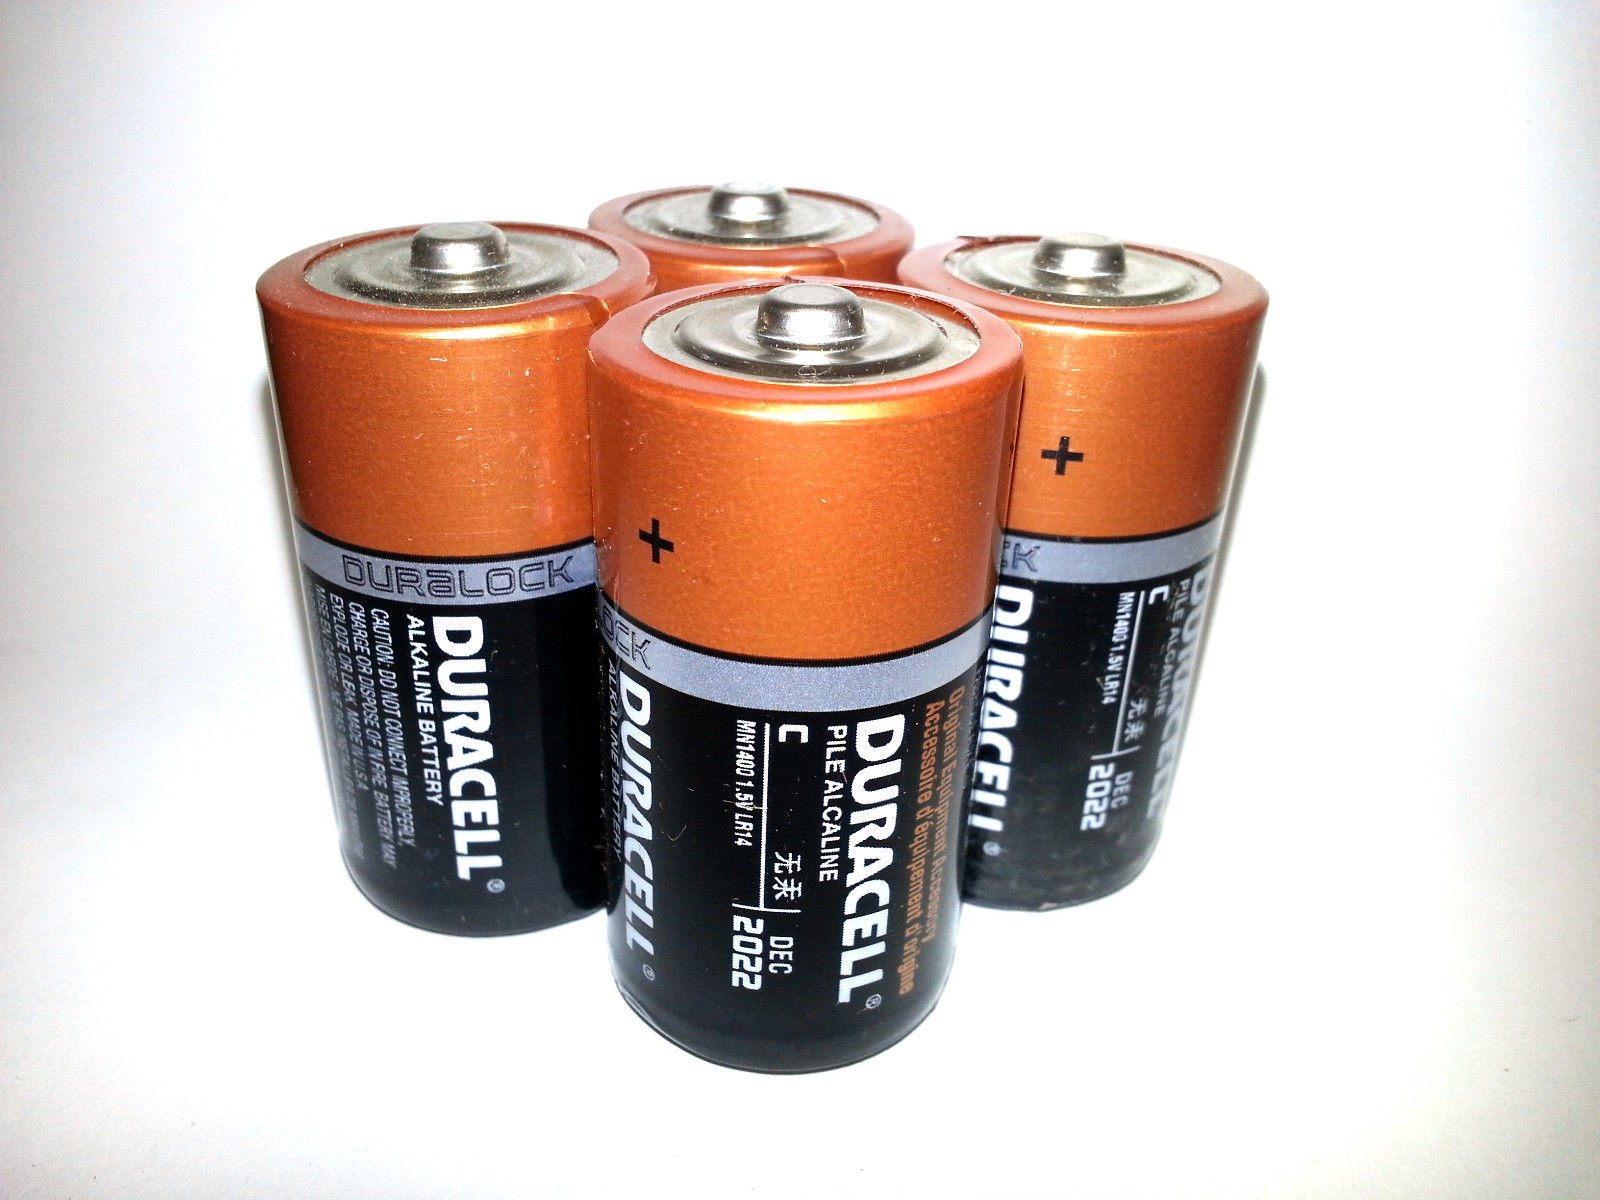 Pack of 80 Duracell MN1400 C Size Duralock Alkaline Battery - Bulk Pack by Duracell (Image #1)